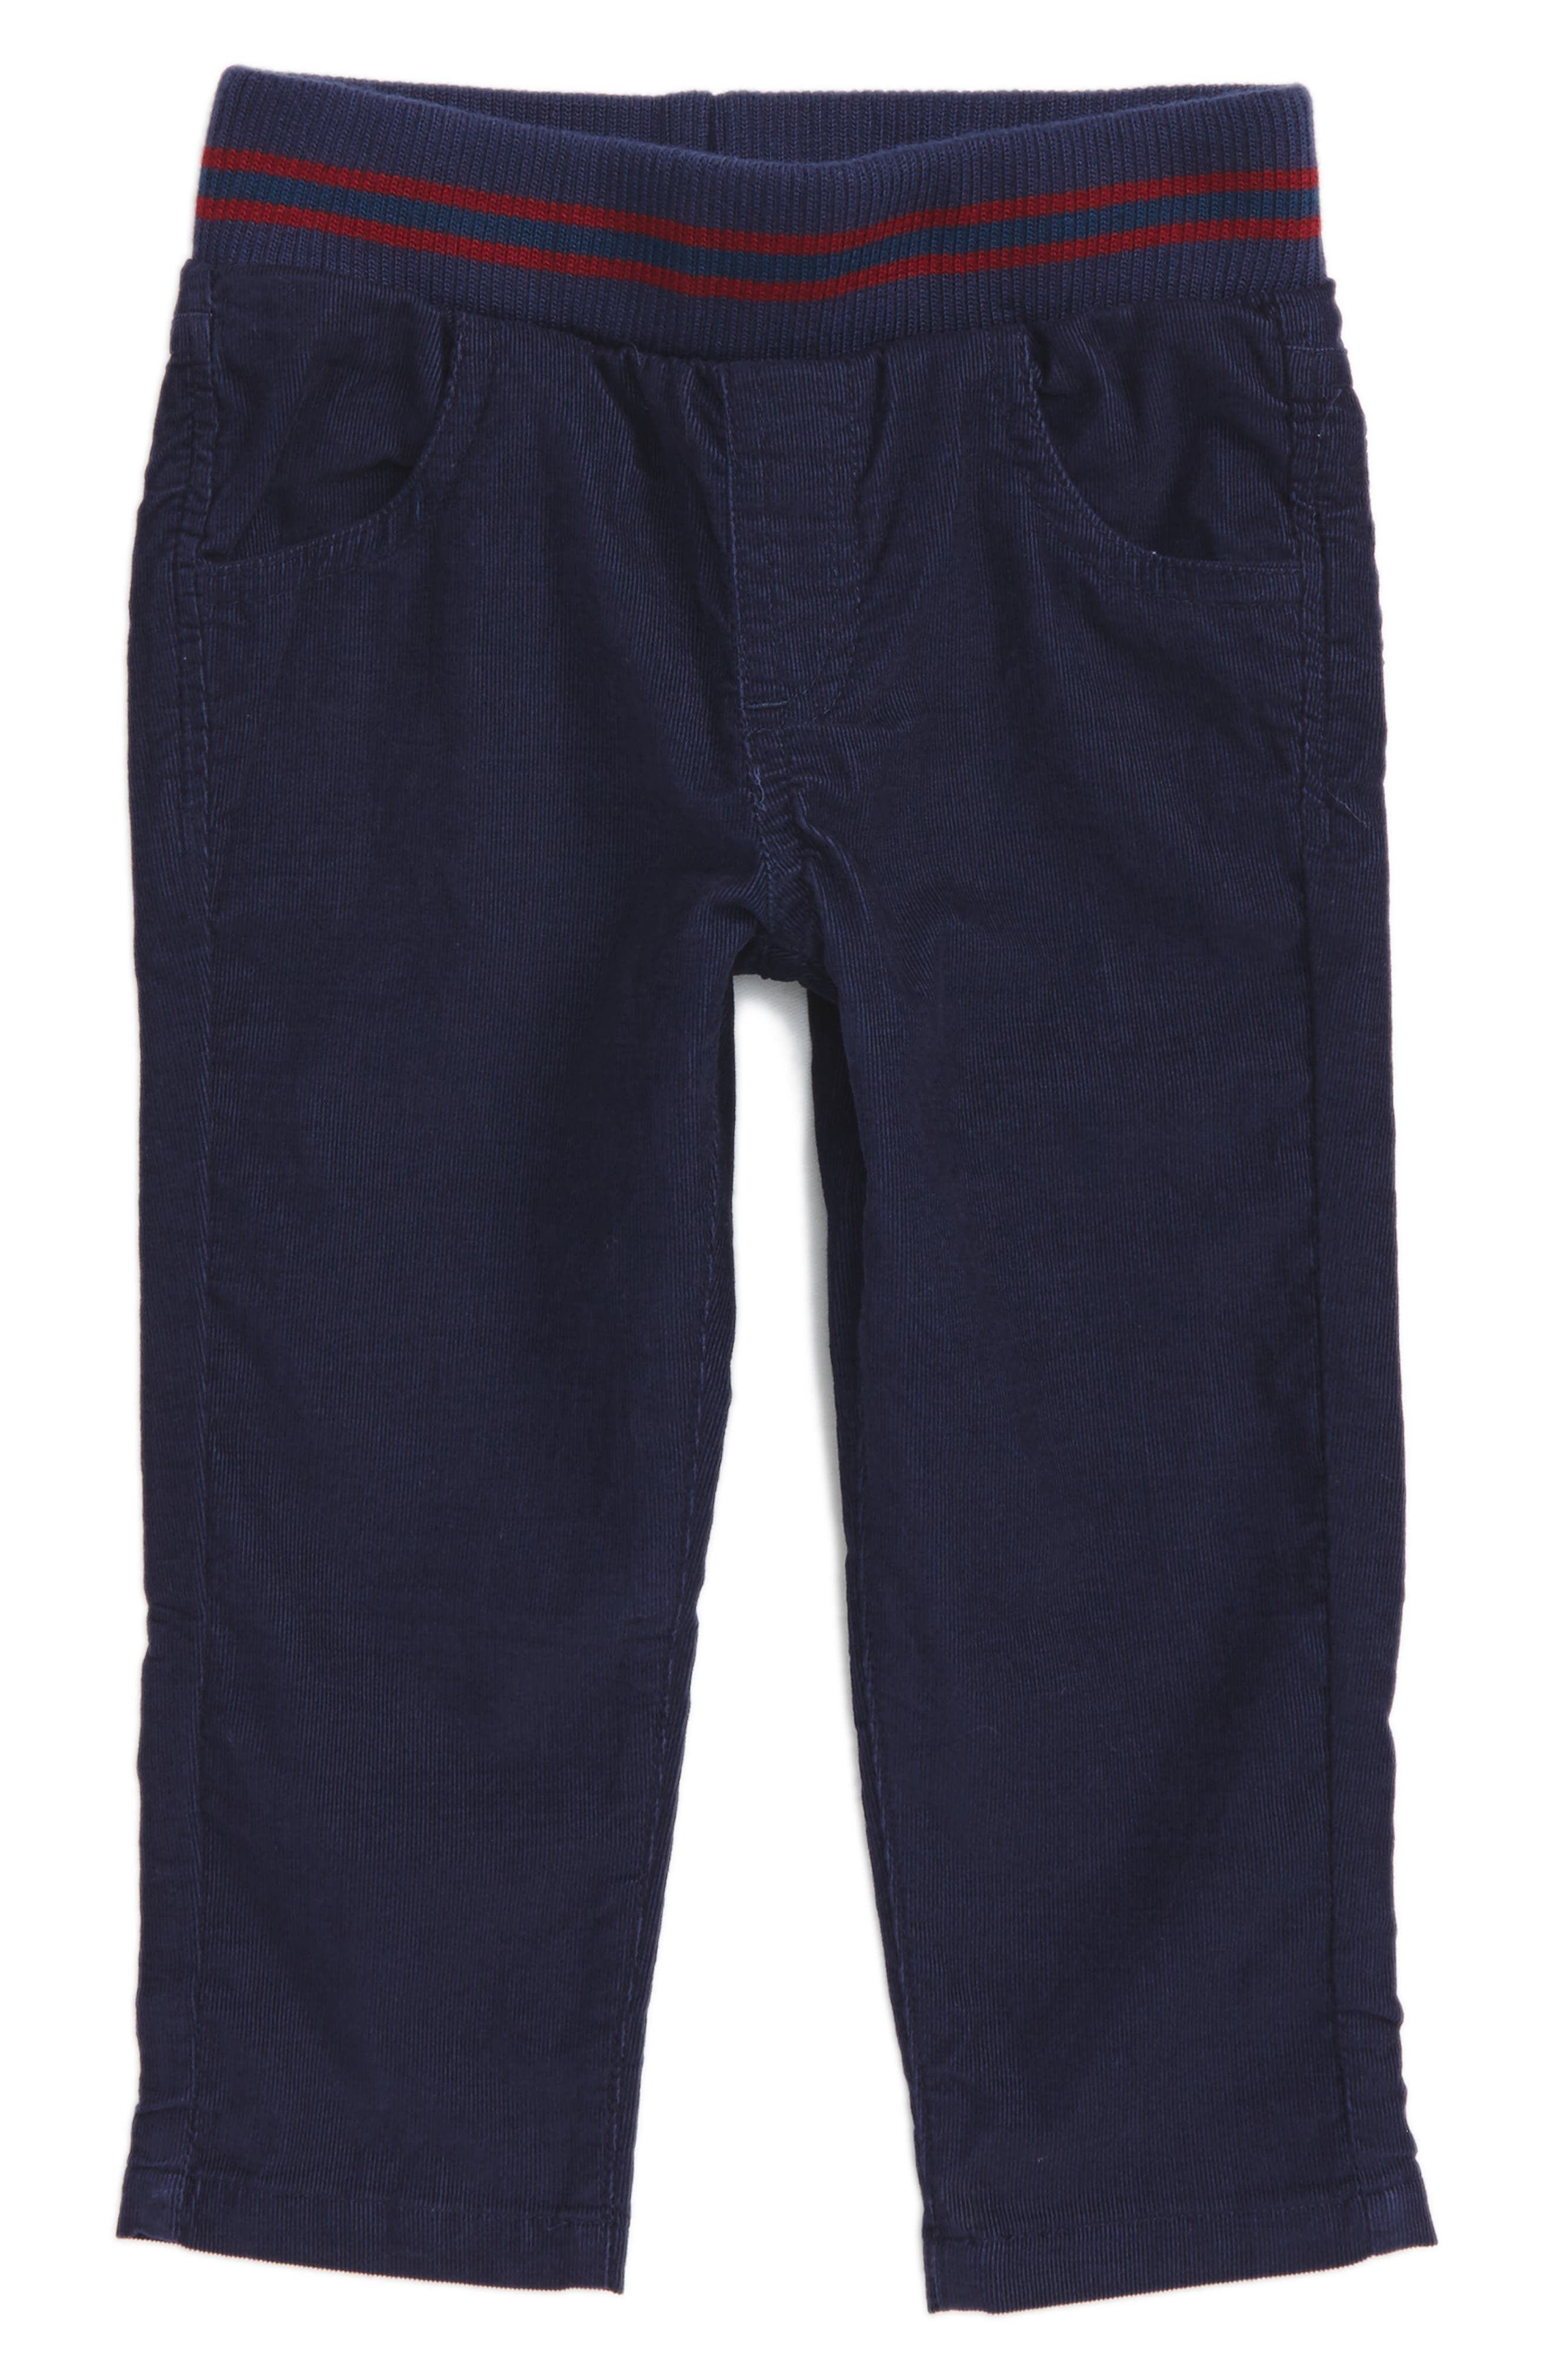 egg by susan lazar Ethan Corduroy Pants (Baby Boys)